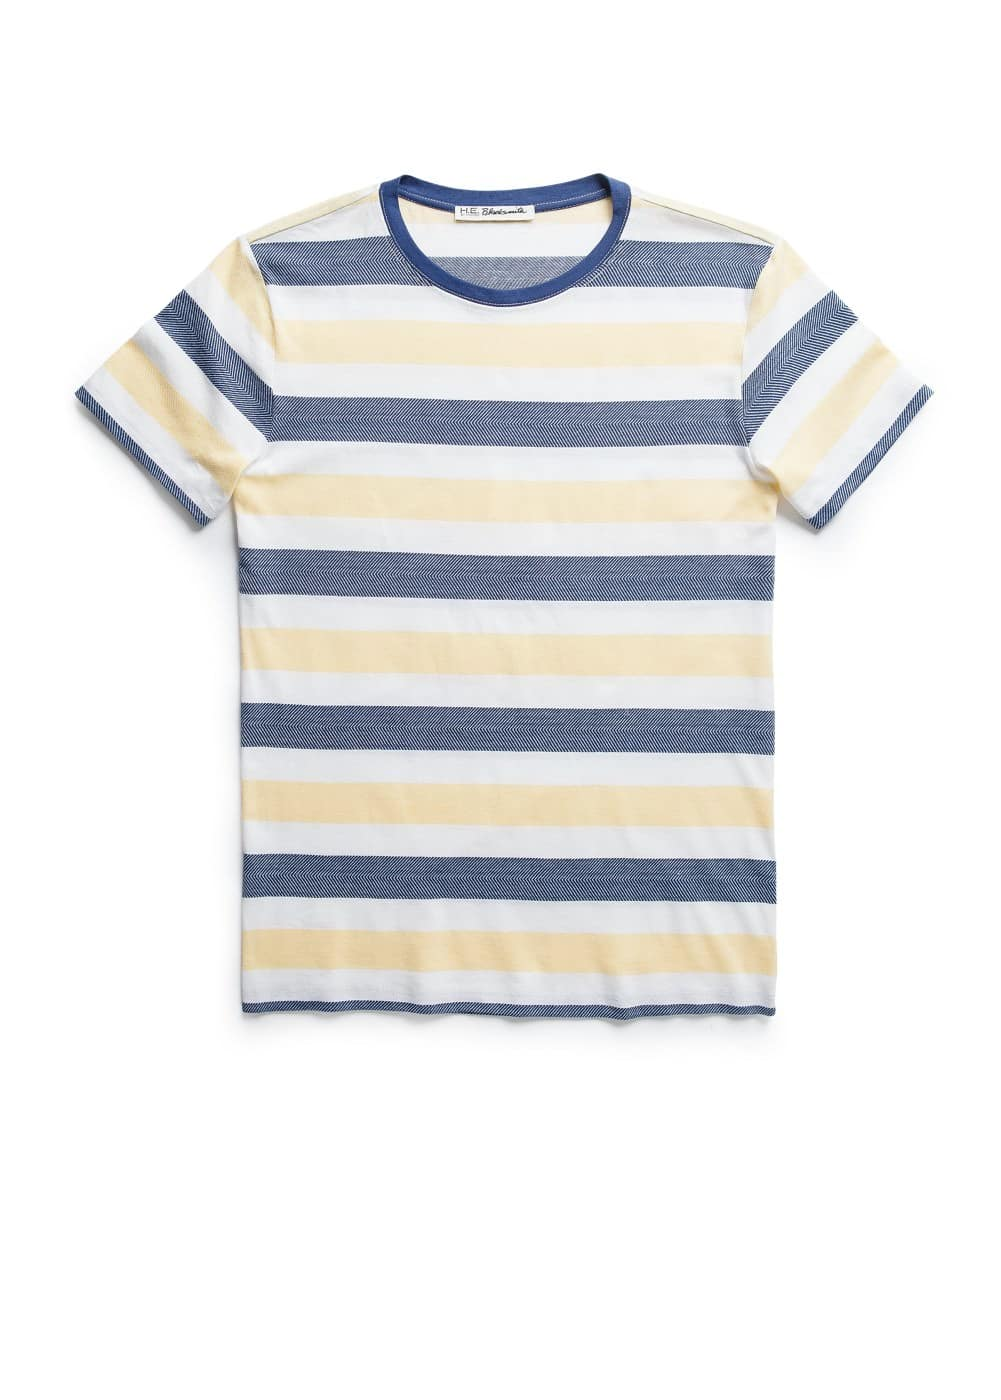 Striped herringbone cotton t-shirt